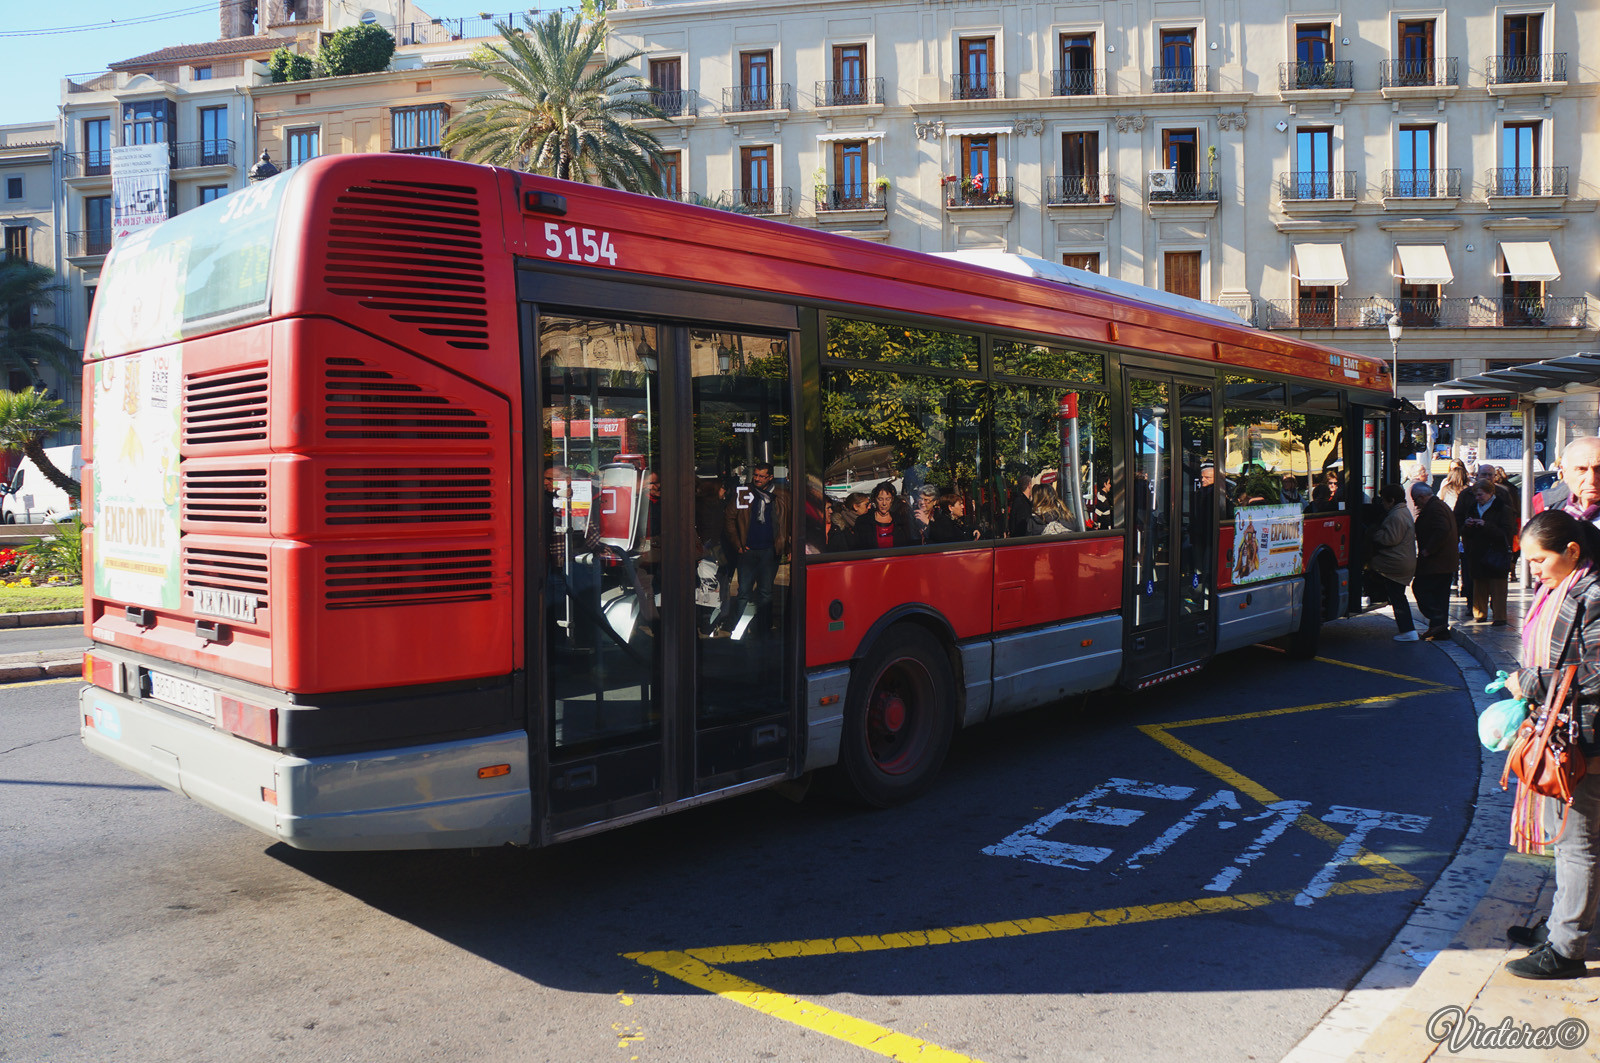 Public Transport. Bus. Valencia. Spain